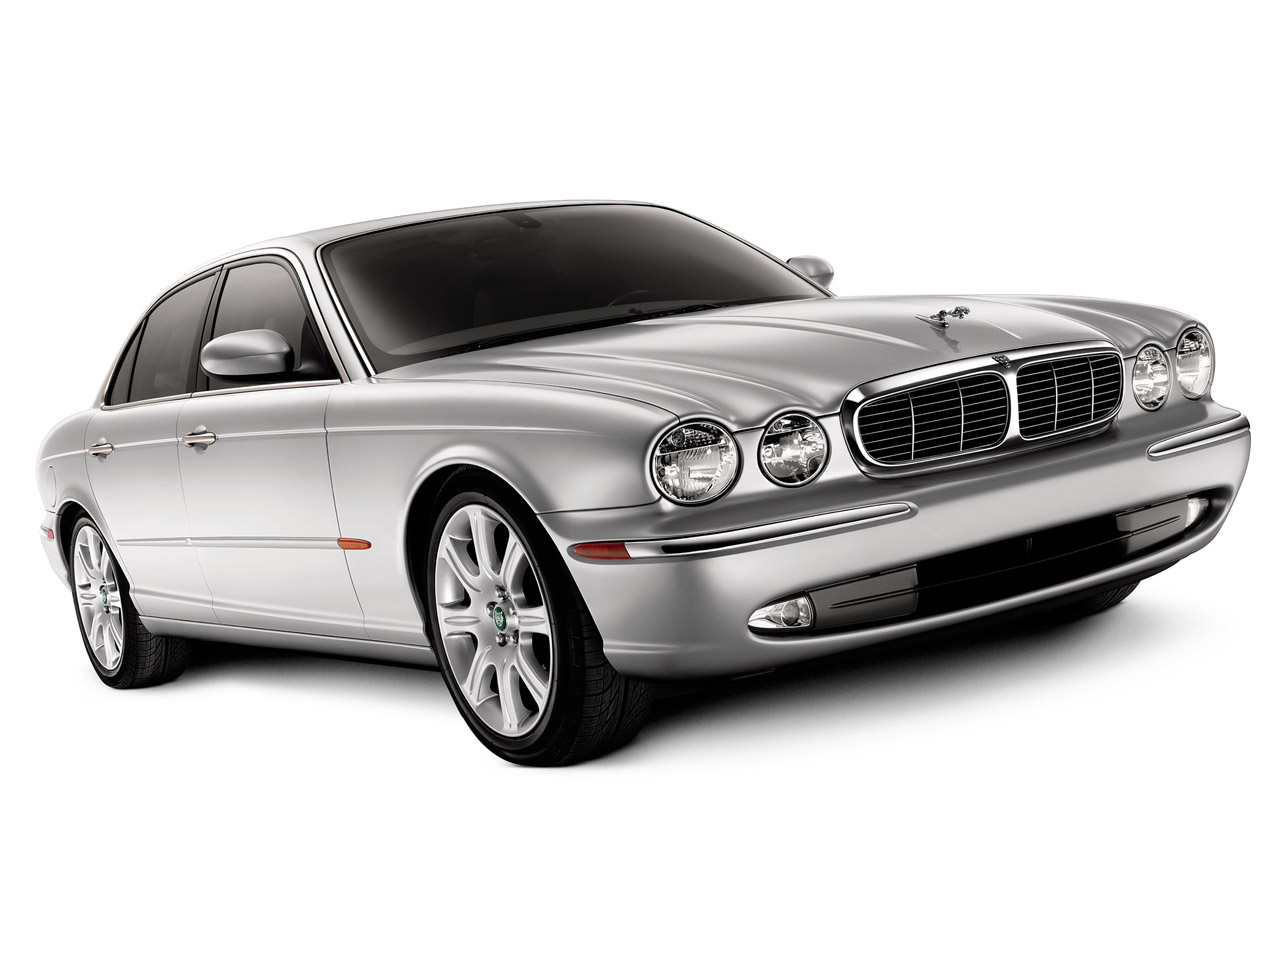 Jaguar XJ8 Car Specifications Free Download Image Of